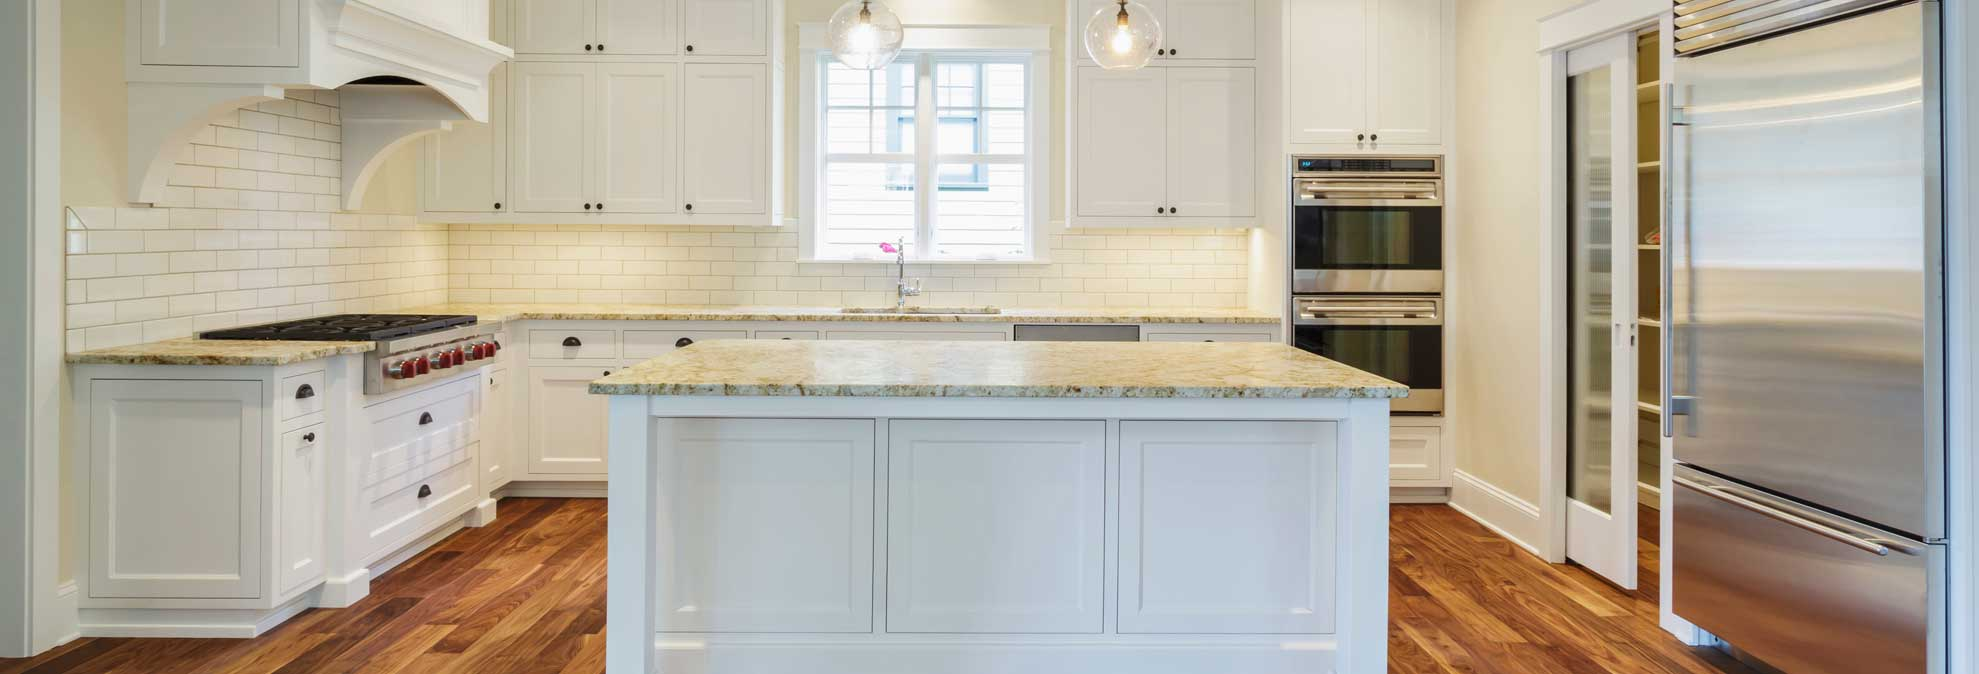 To Remodel Kitchen Kitchen Remodel Mistakes That Will Bust Your Budget Consumer Reports